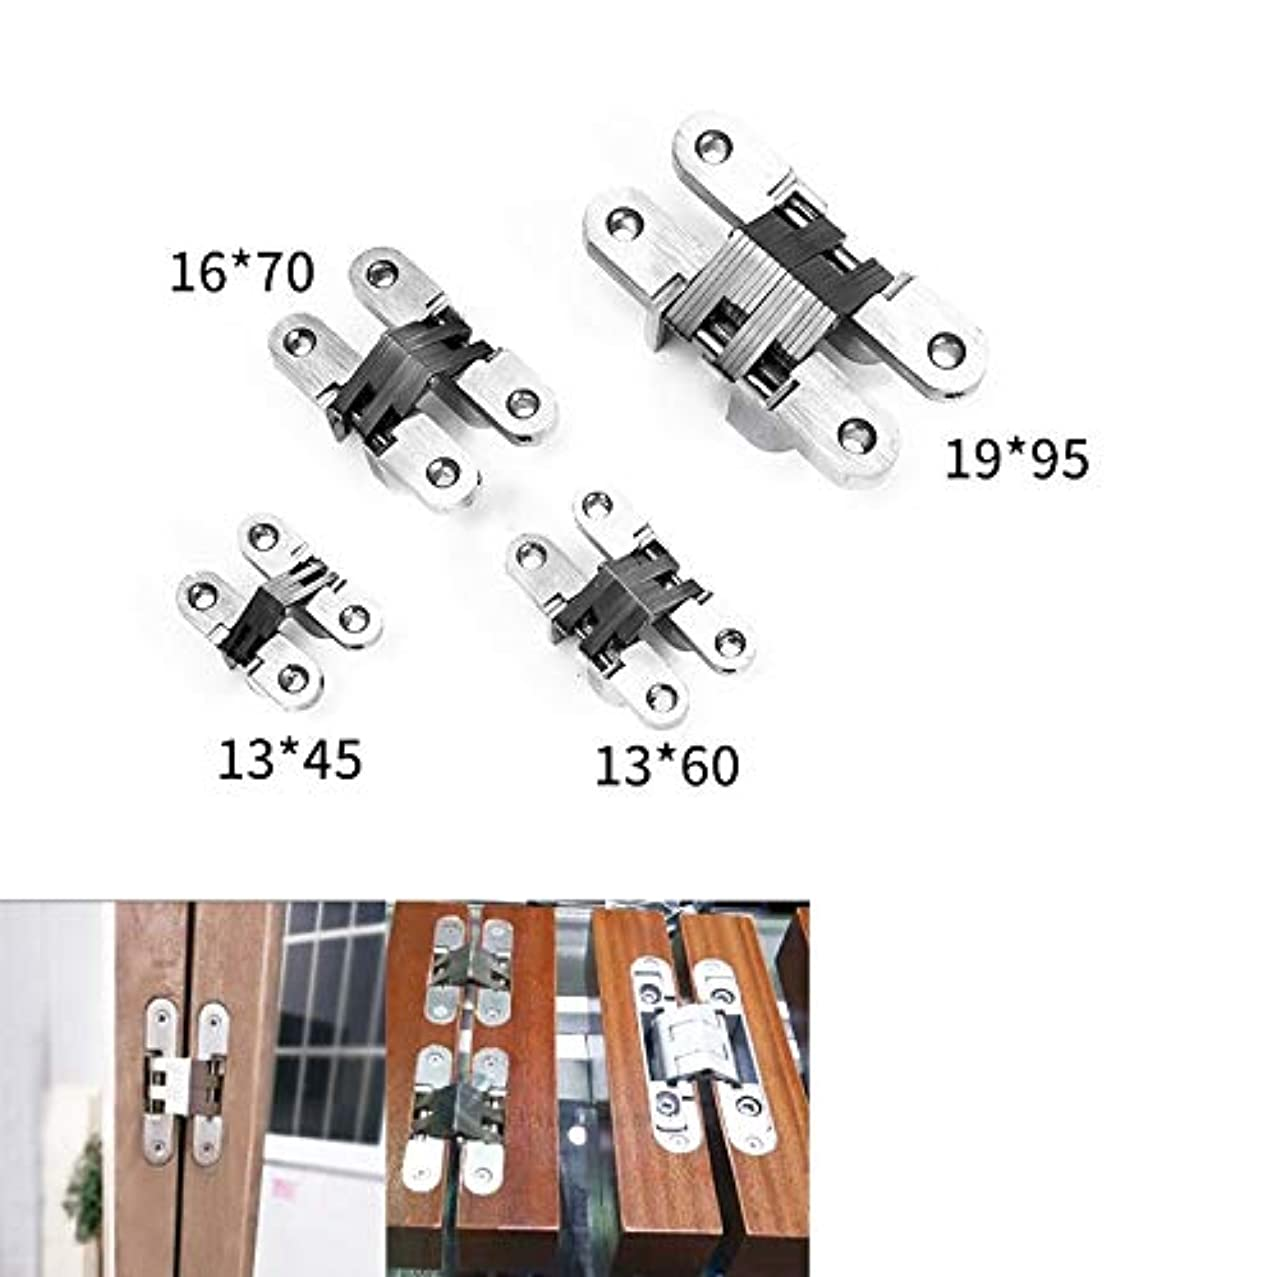 2PCS Stainless Steel Zinc Alloy Hinge Hidden Gate Hinges Non-Mortise Mute Door Hinges Strong Sturdy Furniture Parts - (Color: 19 X 95mm)